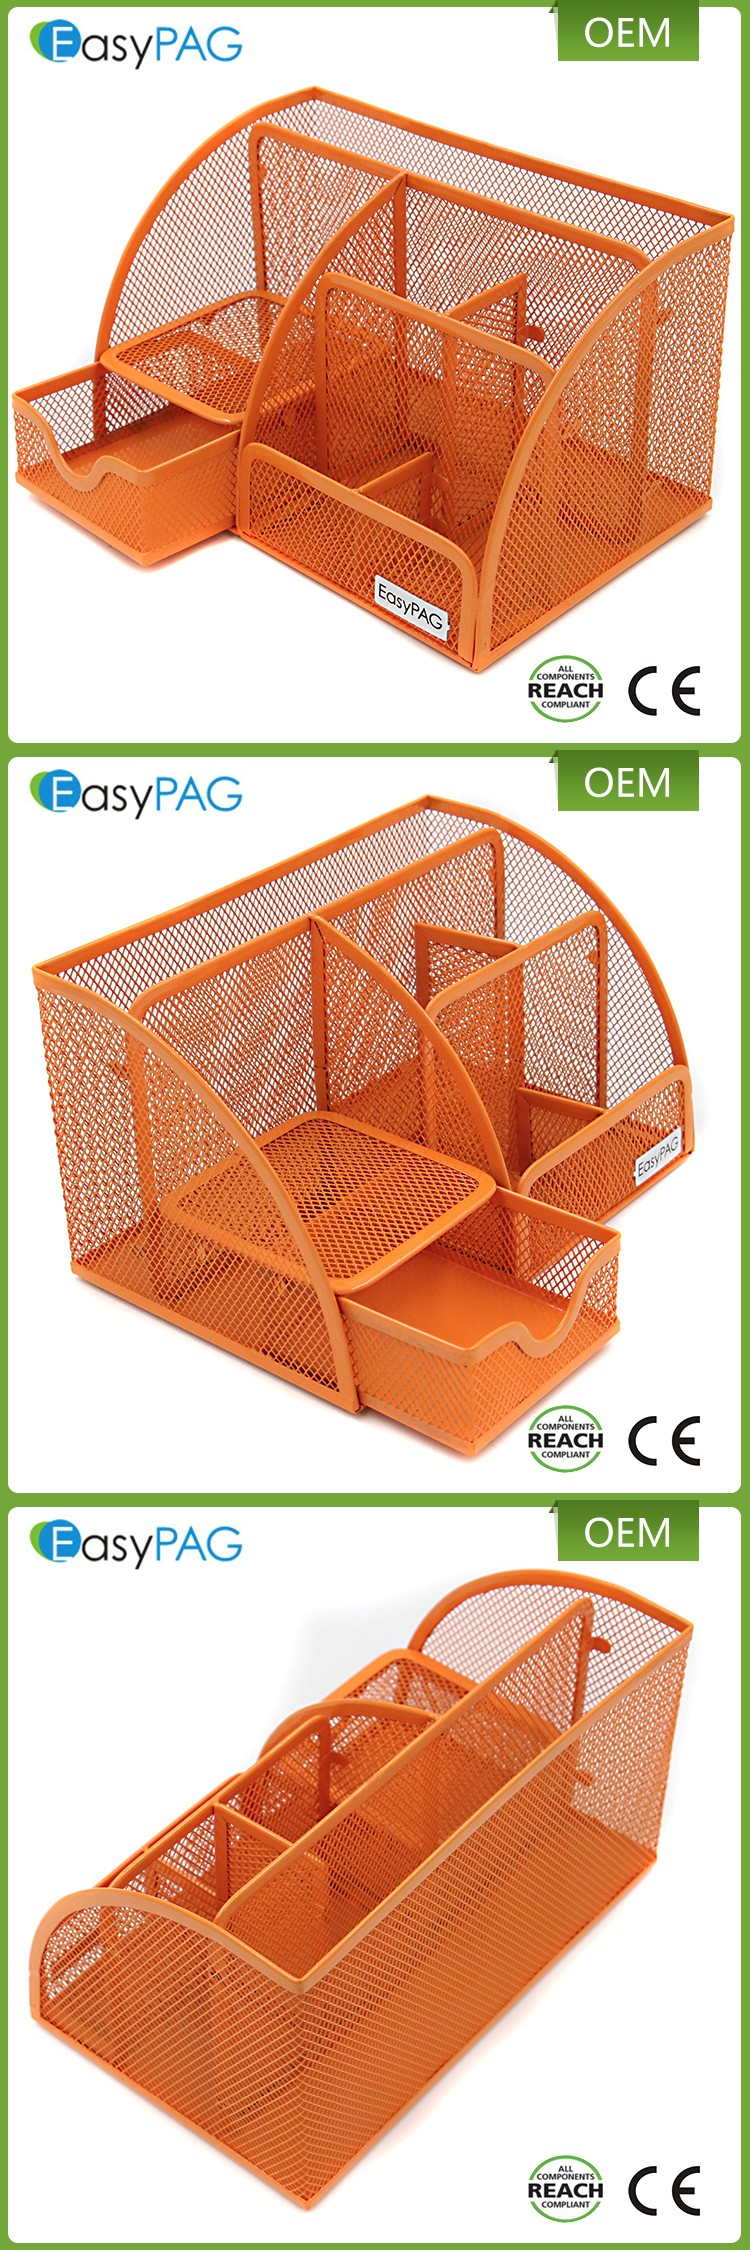 6 Compartments Orange Metal Mesh Collection Supply Caddy Desk Organizer